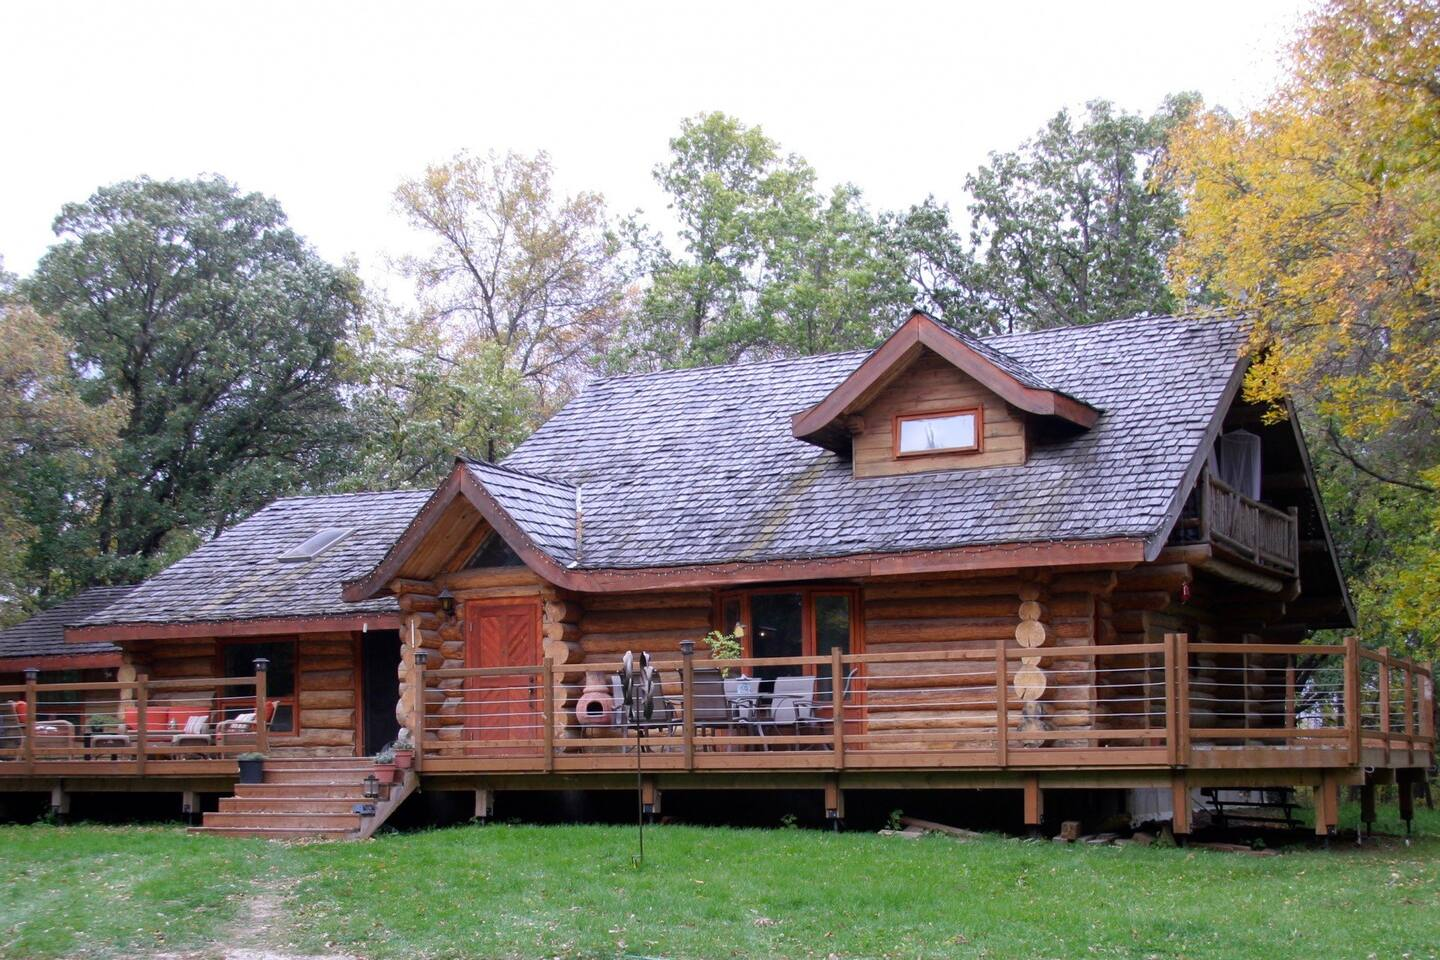 Scandinavian Log home on the la Salle River, 20 minutes from Winnipeg Manitoba, Cottage living just minutes from the city.